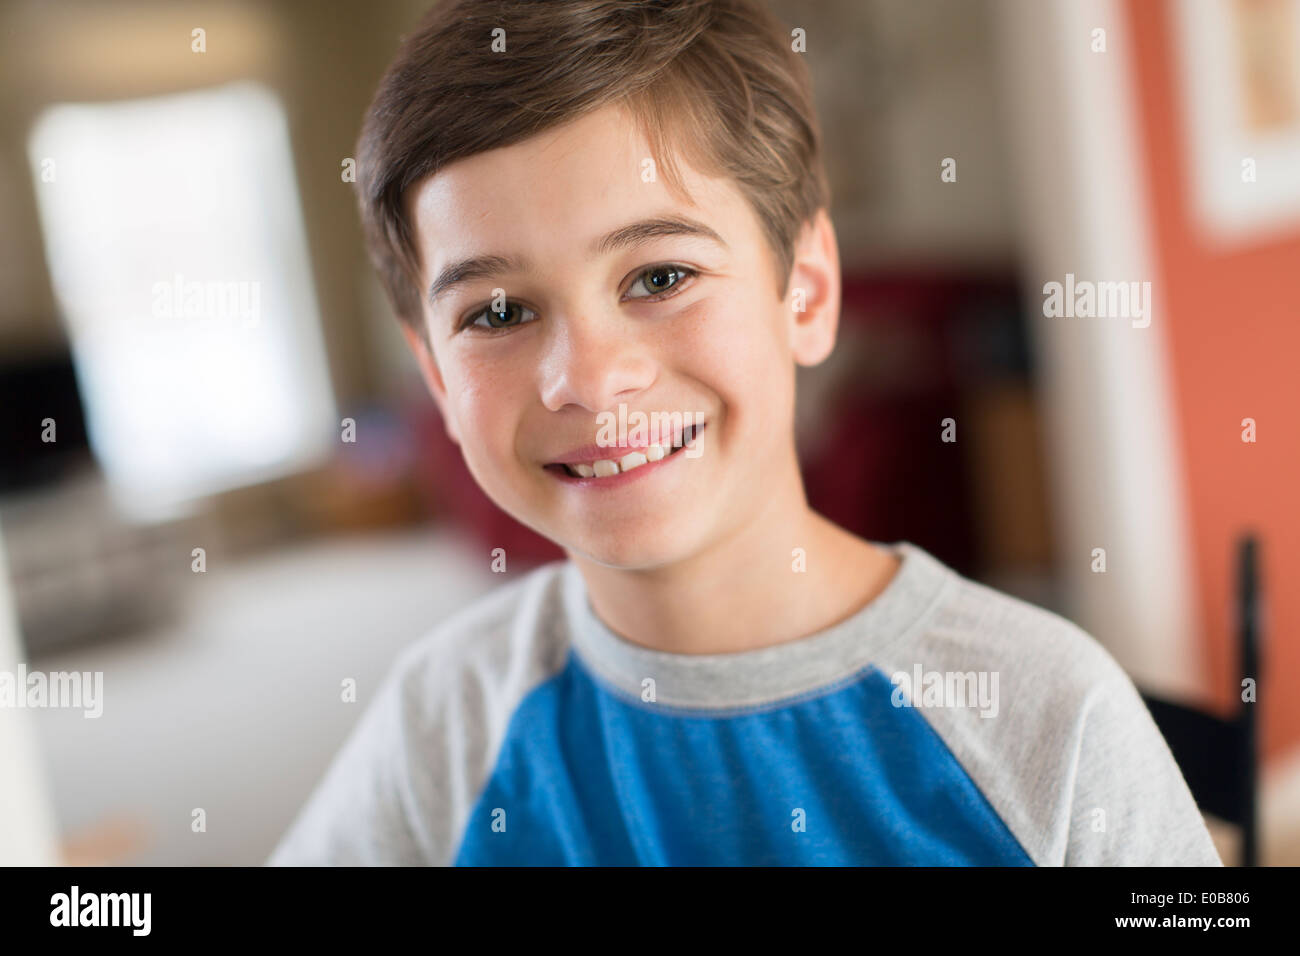 Portrait of smiling boy at home Stock Photo